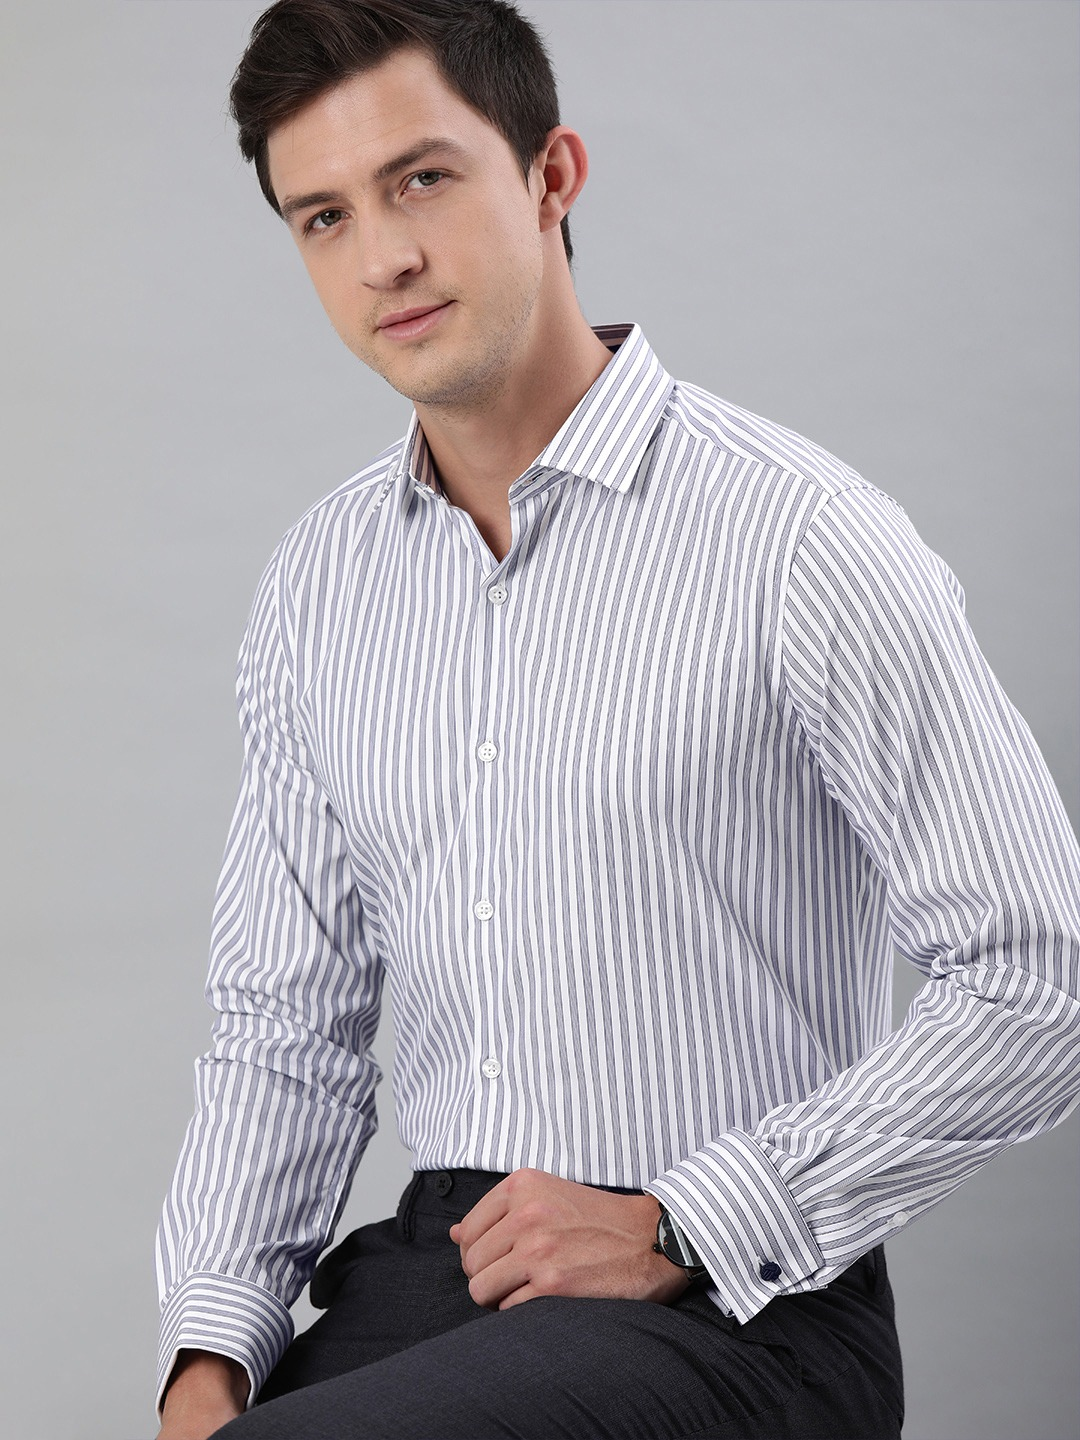 The Bear House   THE BEAR HOUSE Men White  Navy Blue Slim Fit Striped French-Cuff Formal Shirt